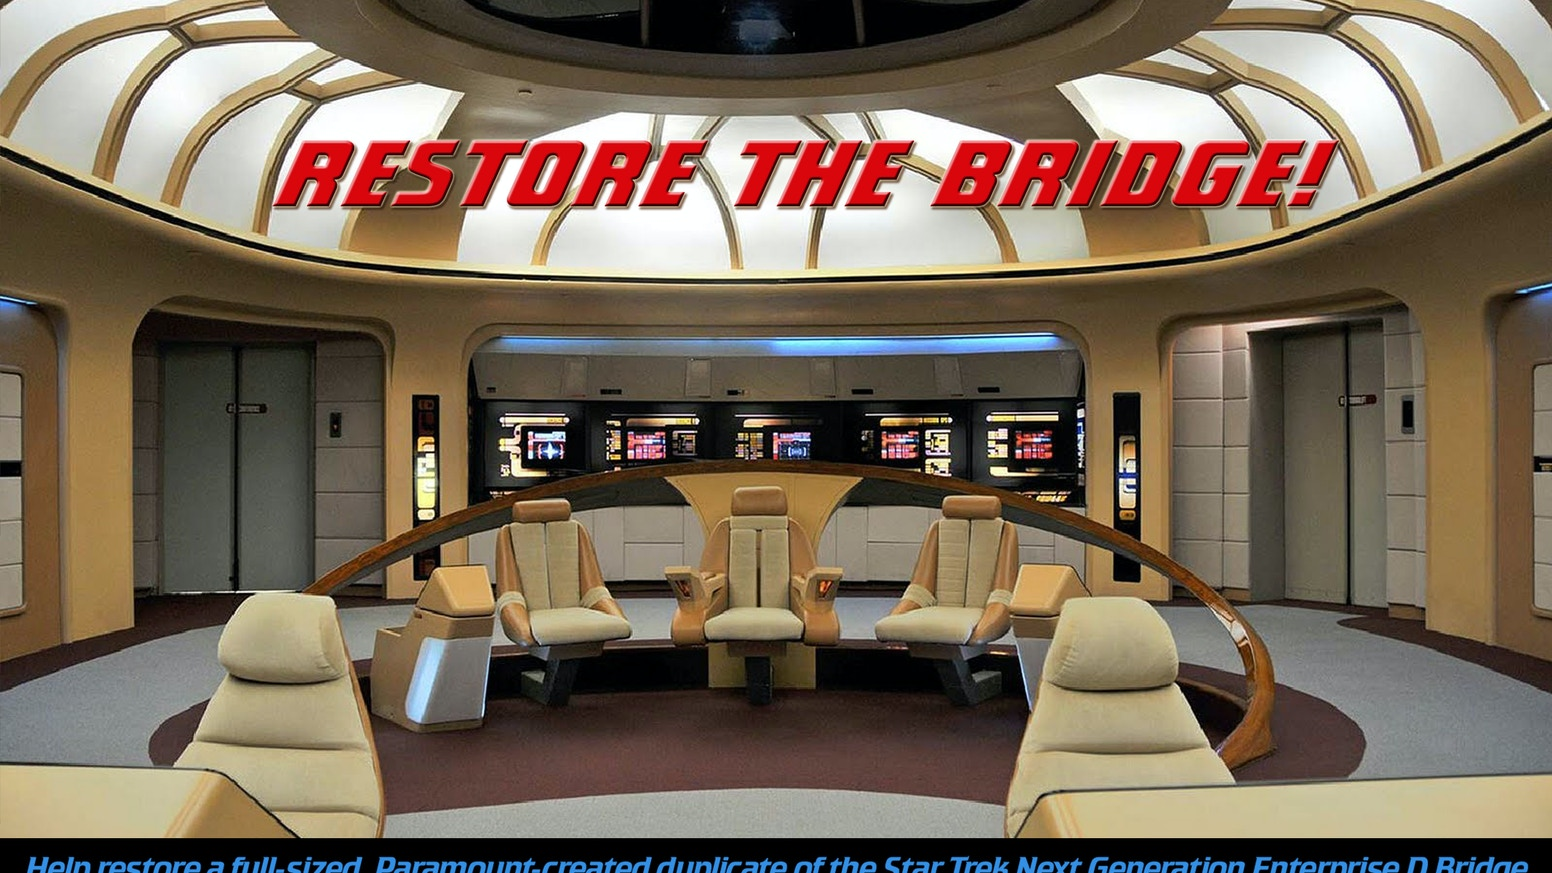 Star Trek Enterprise Bridge Interactive Museum By New